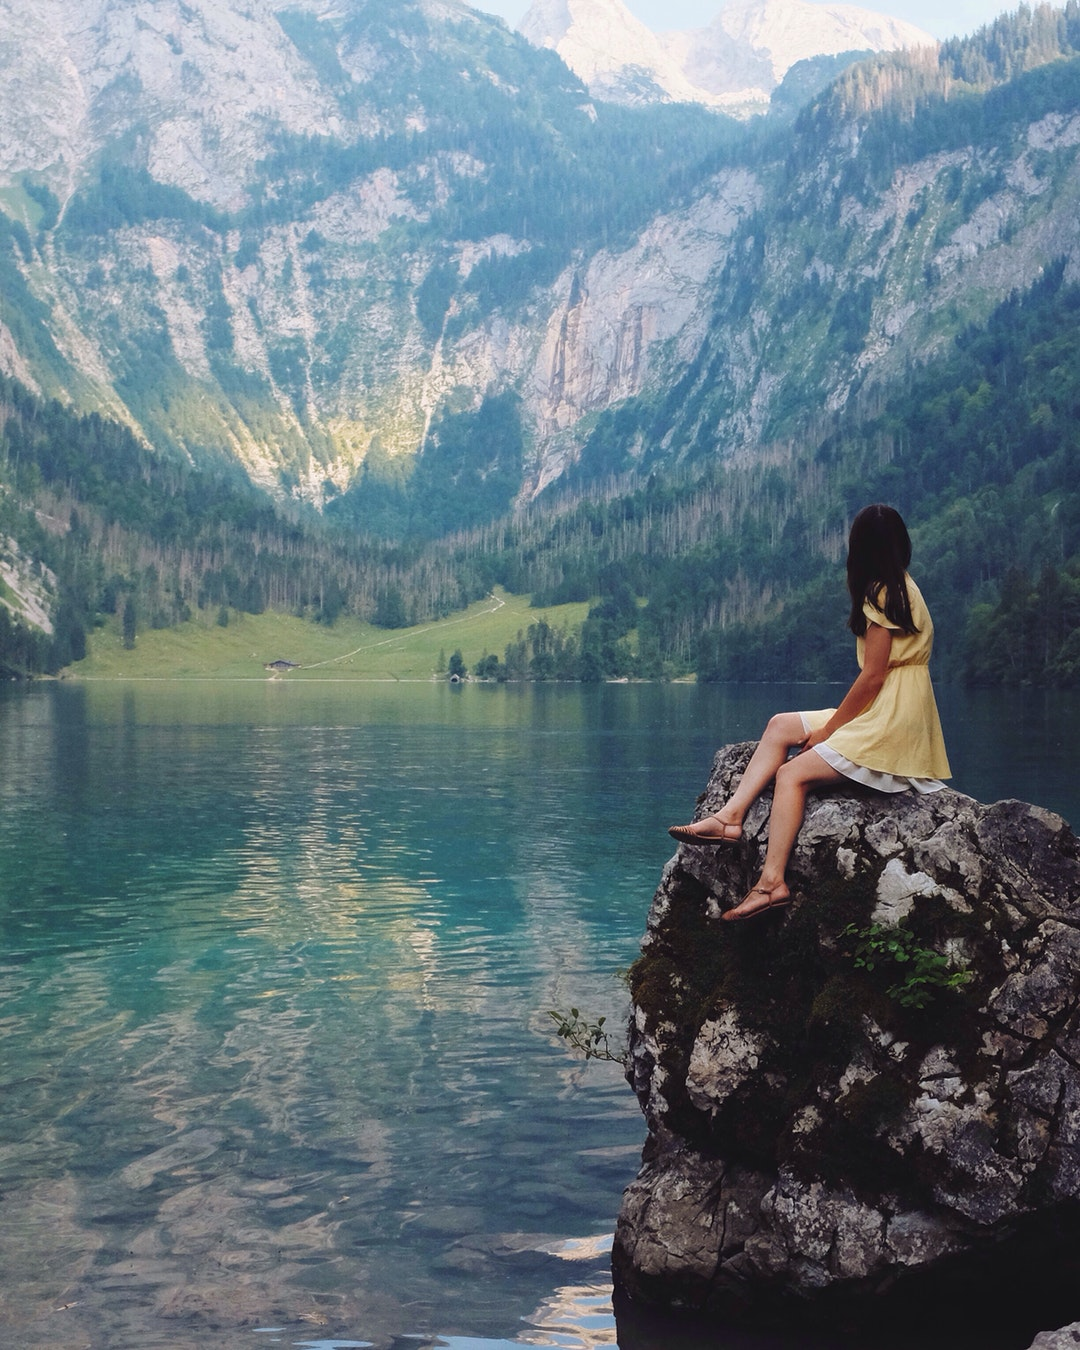 A woman in a yellow dress sitting on a large rock next to a lake and mountains in Шёнау-ам-Кёнигсзе, Бавария, Германия